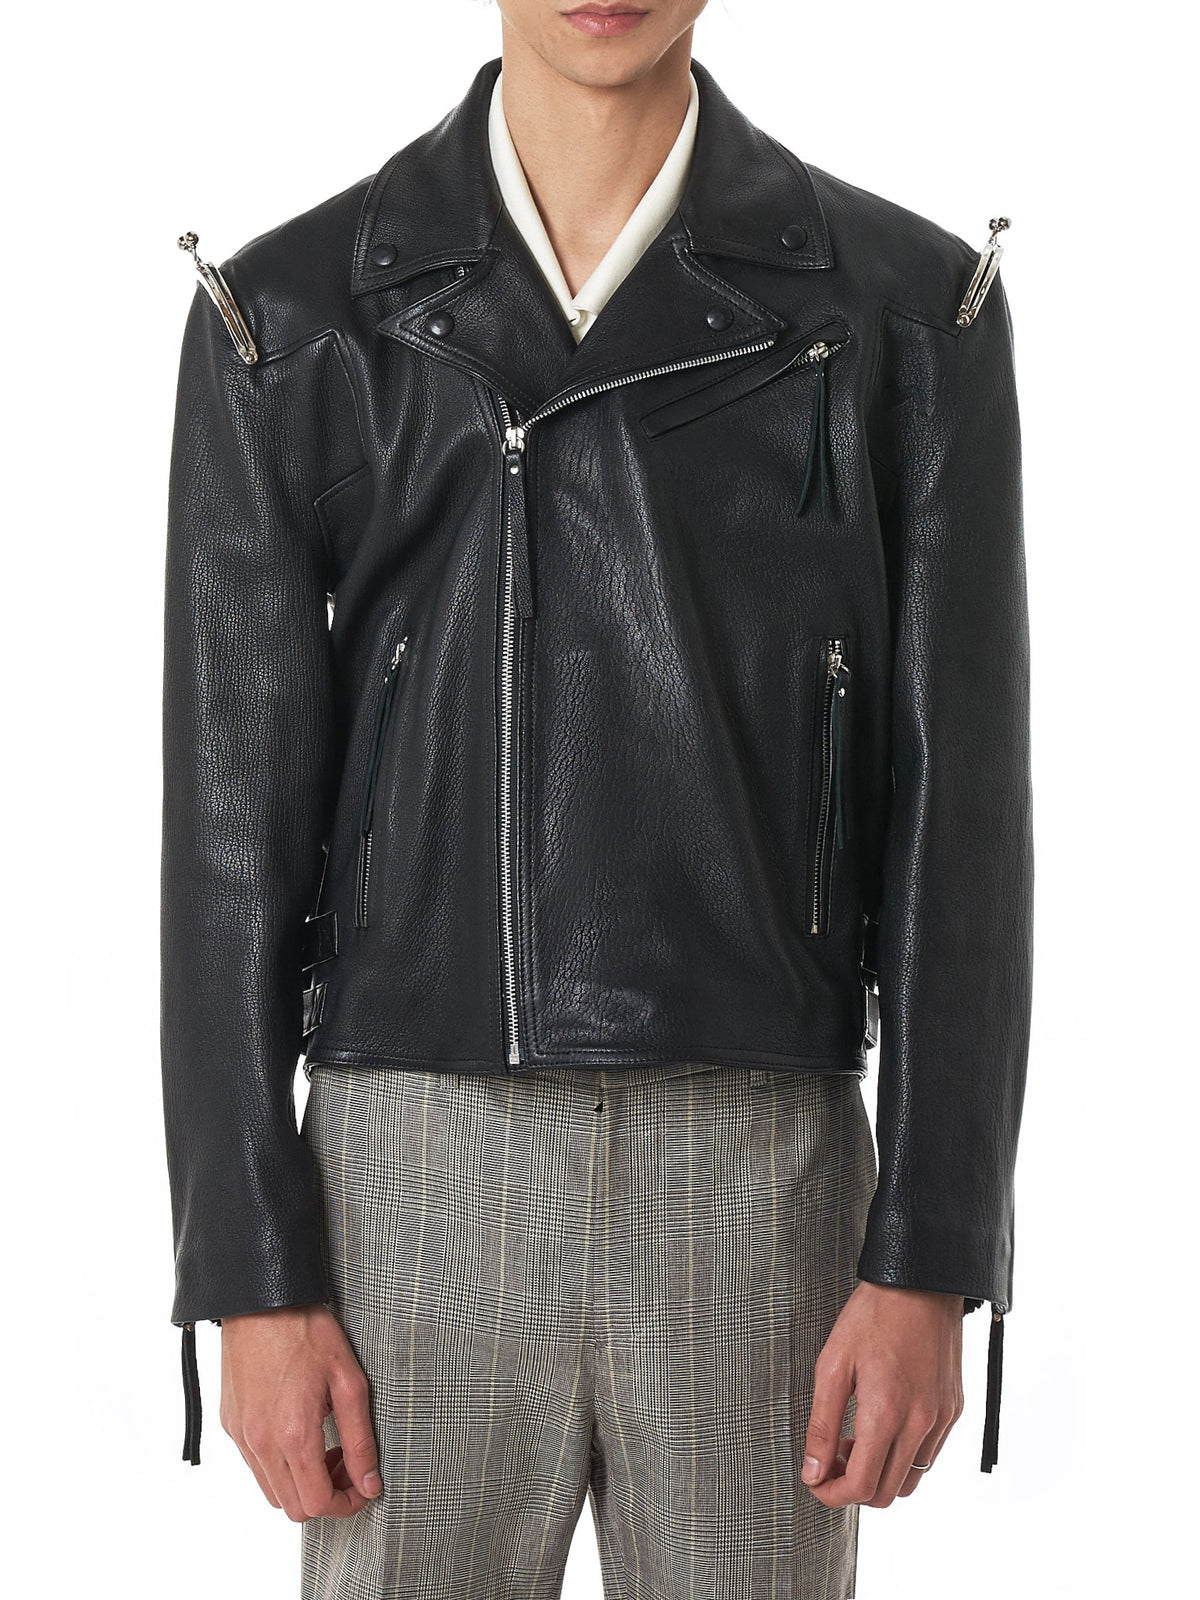 Sanchez-Kane Leather Jacket - Hlorenzo Front